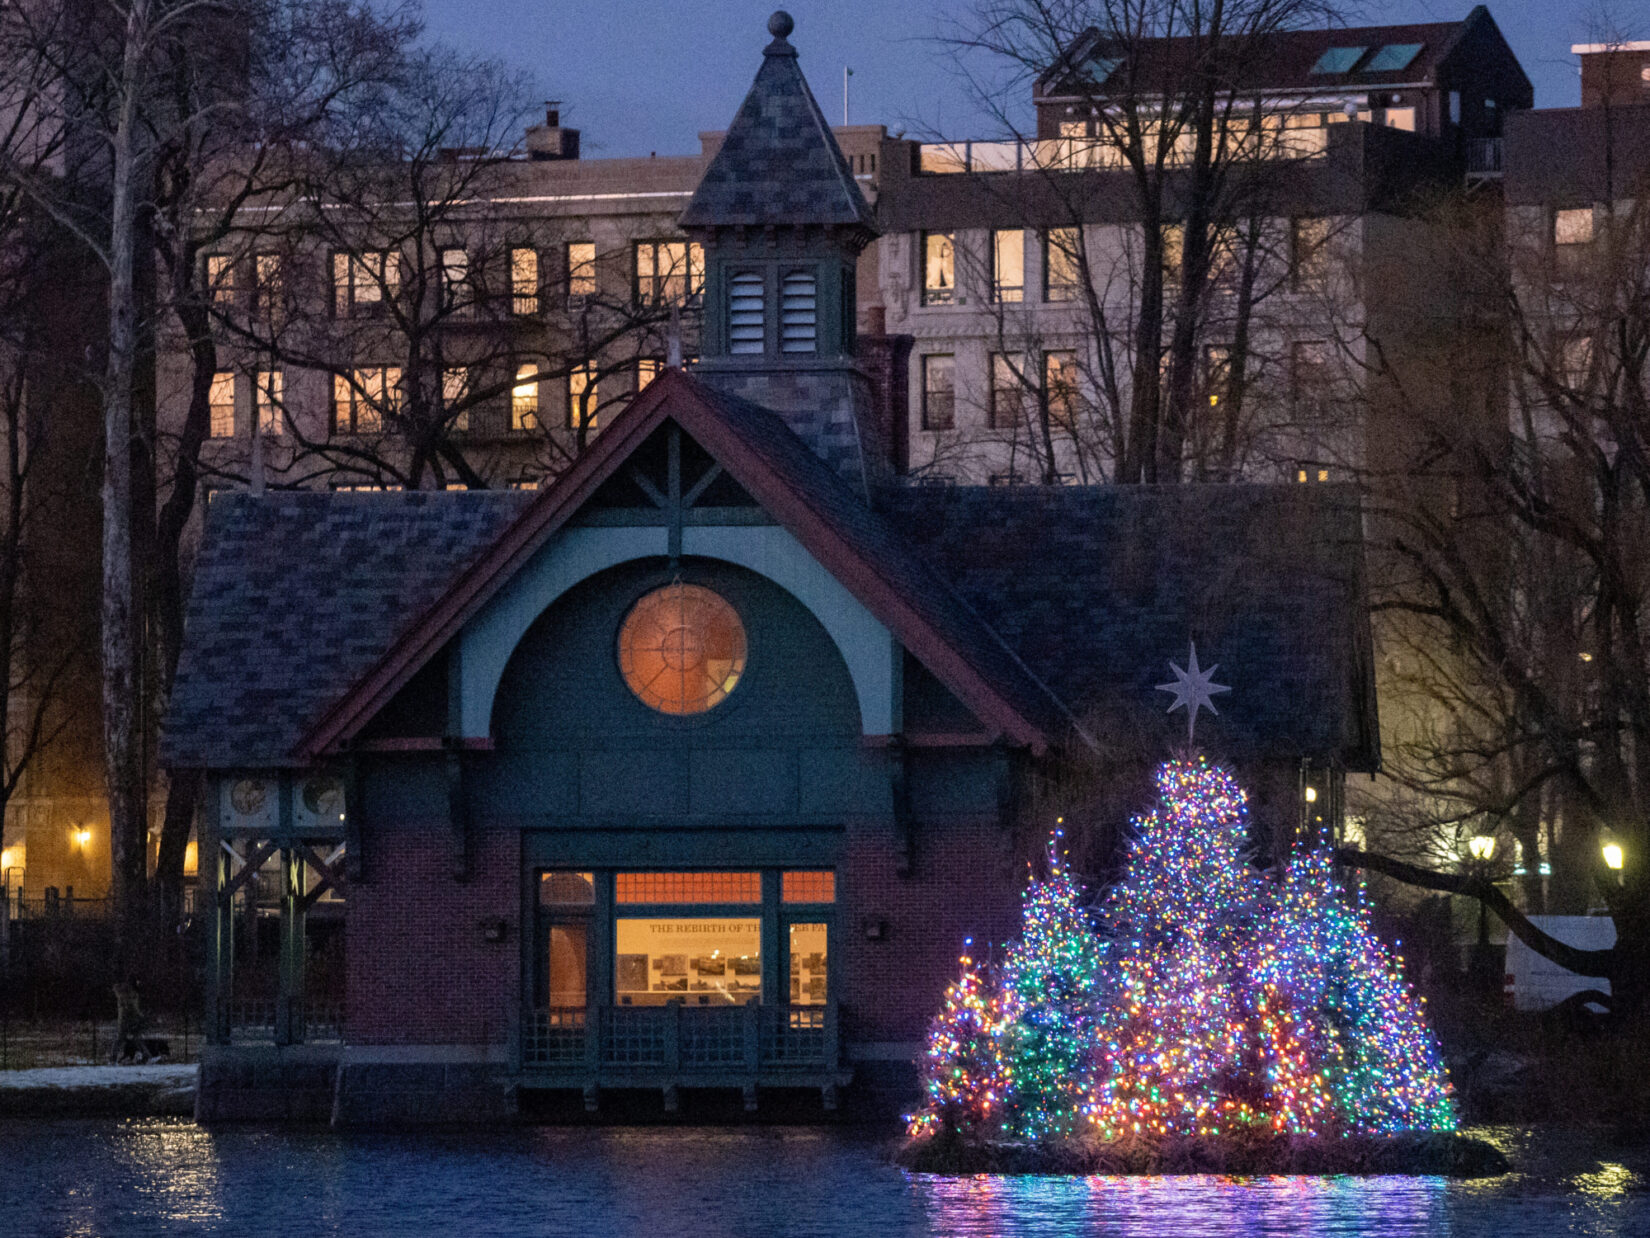 The Charles A. Dana Discovery Center is the evening backdrop for a small island of colorfully lit holiday trees